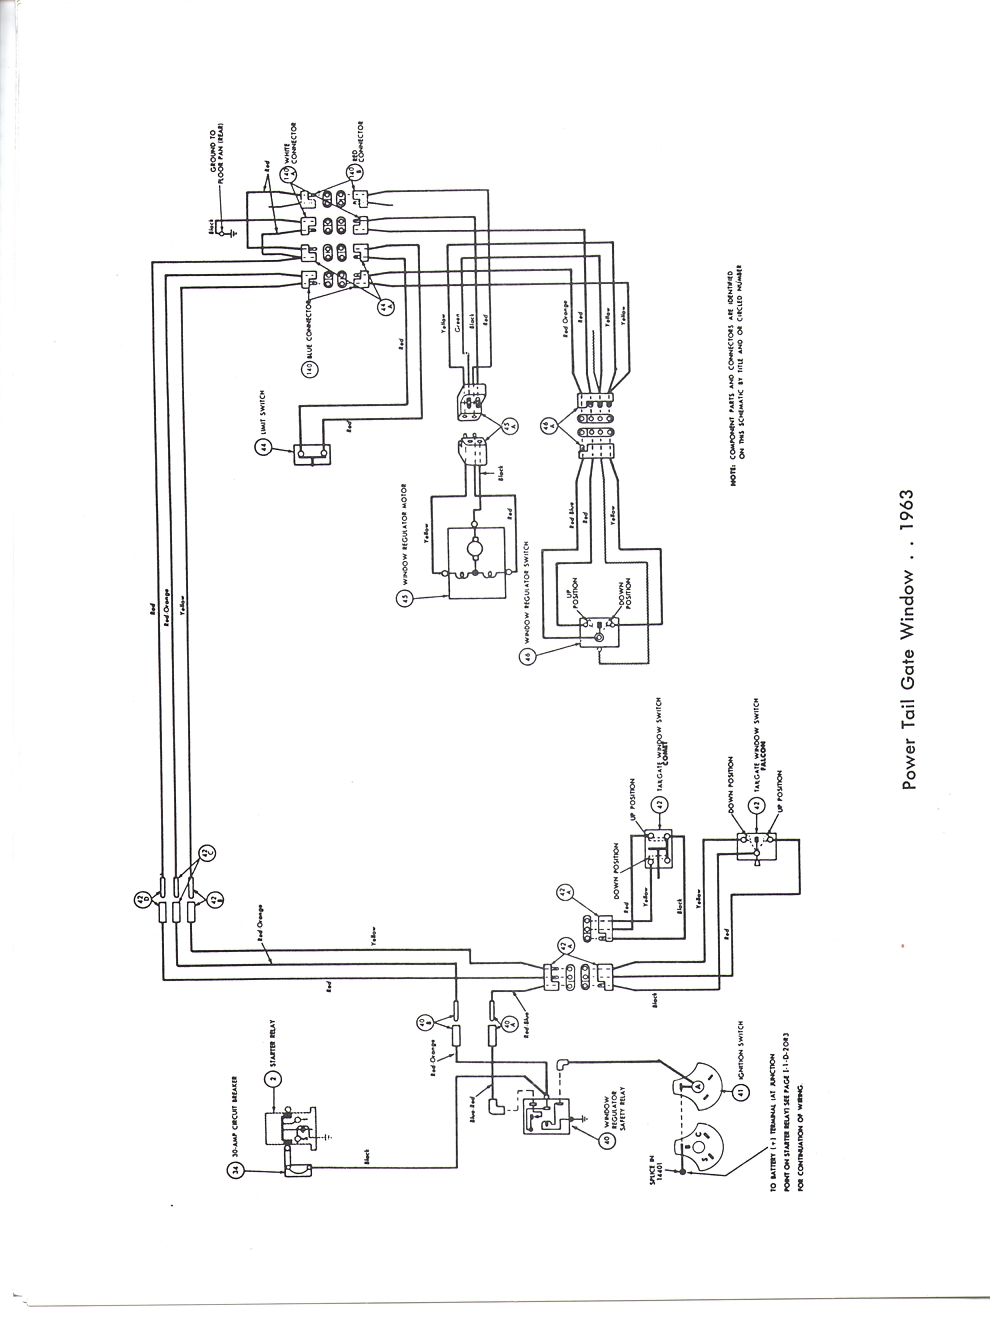 Falcon Diagrams Ford Power Mirror Switch Wiring Diagram Here You Will Find Related To The